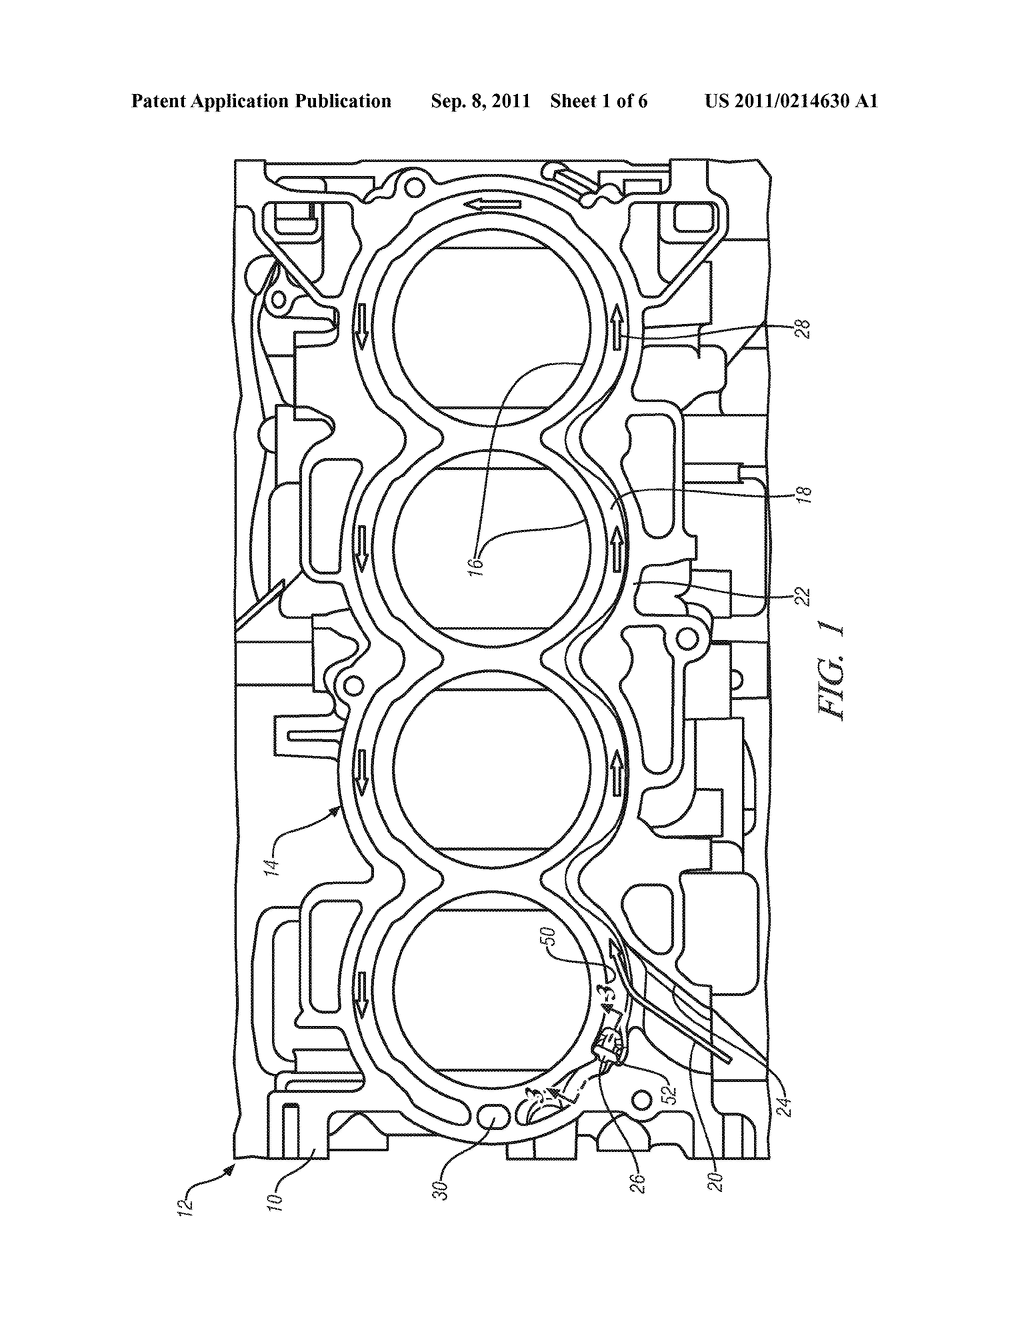 Internal Bustion Engine Diagram Ford 289 1966 Mustang Fuse